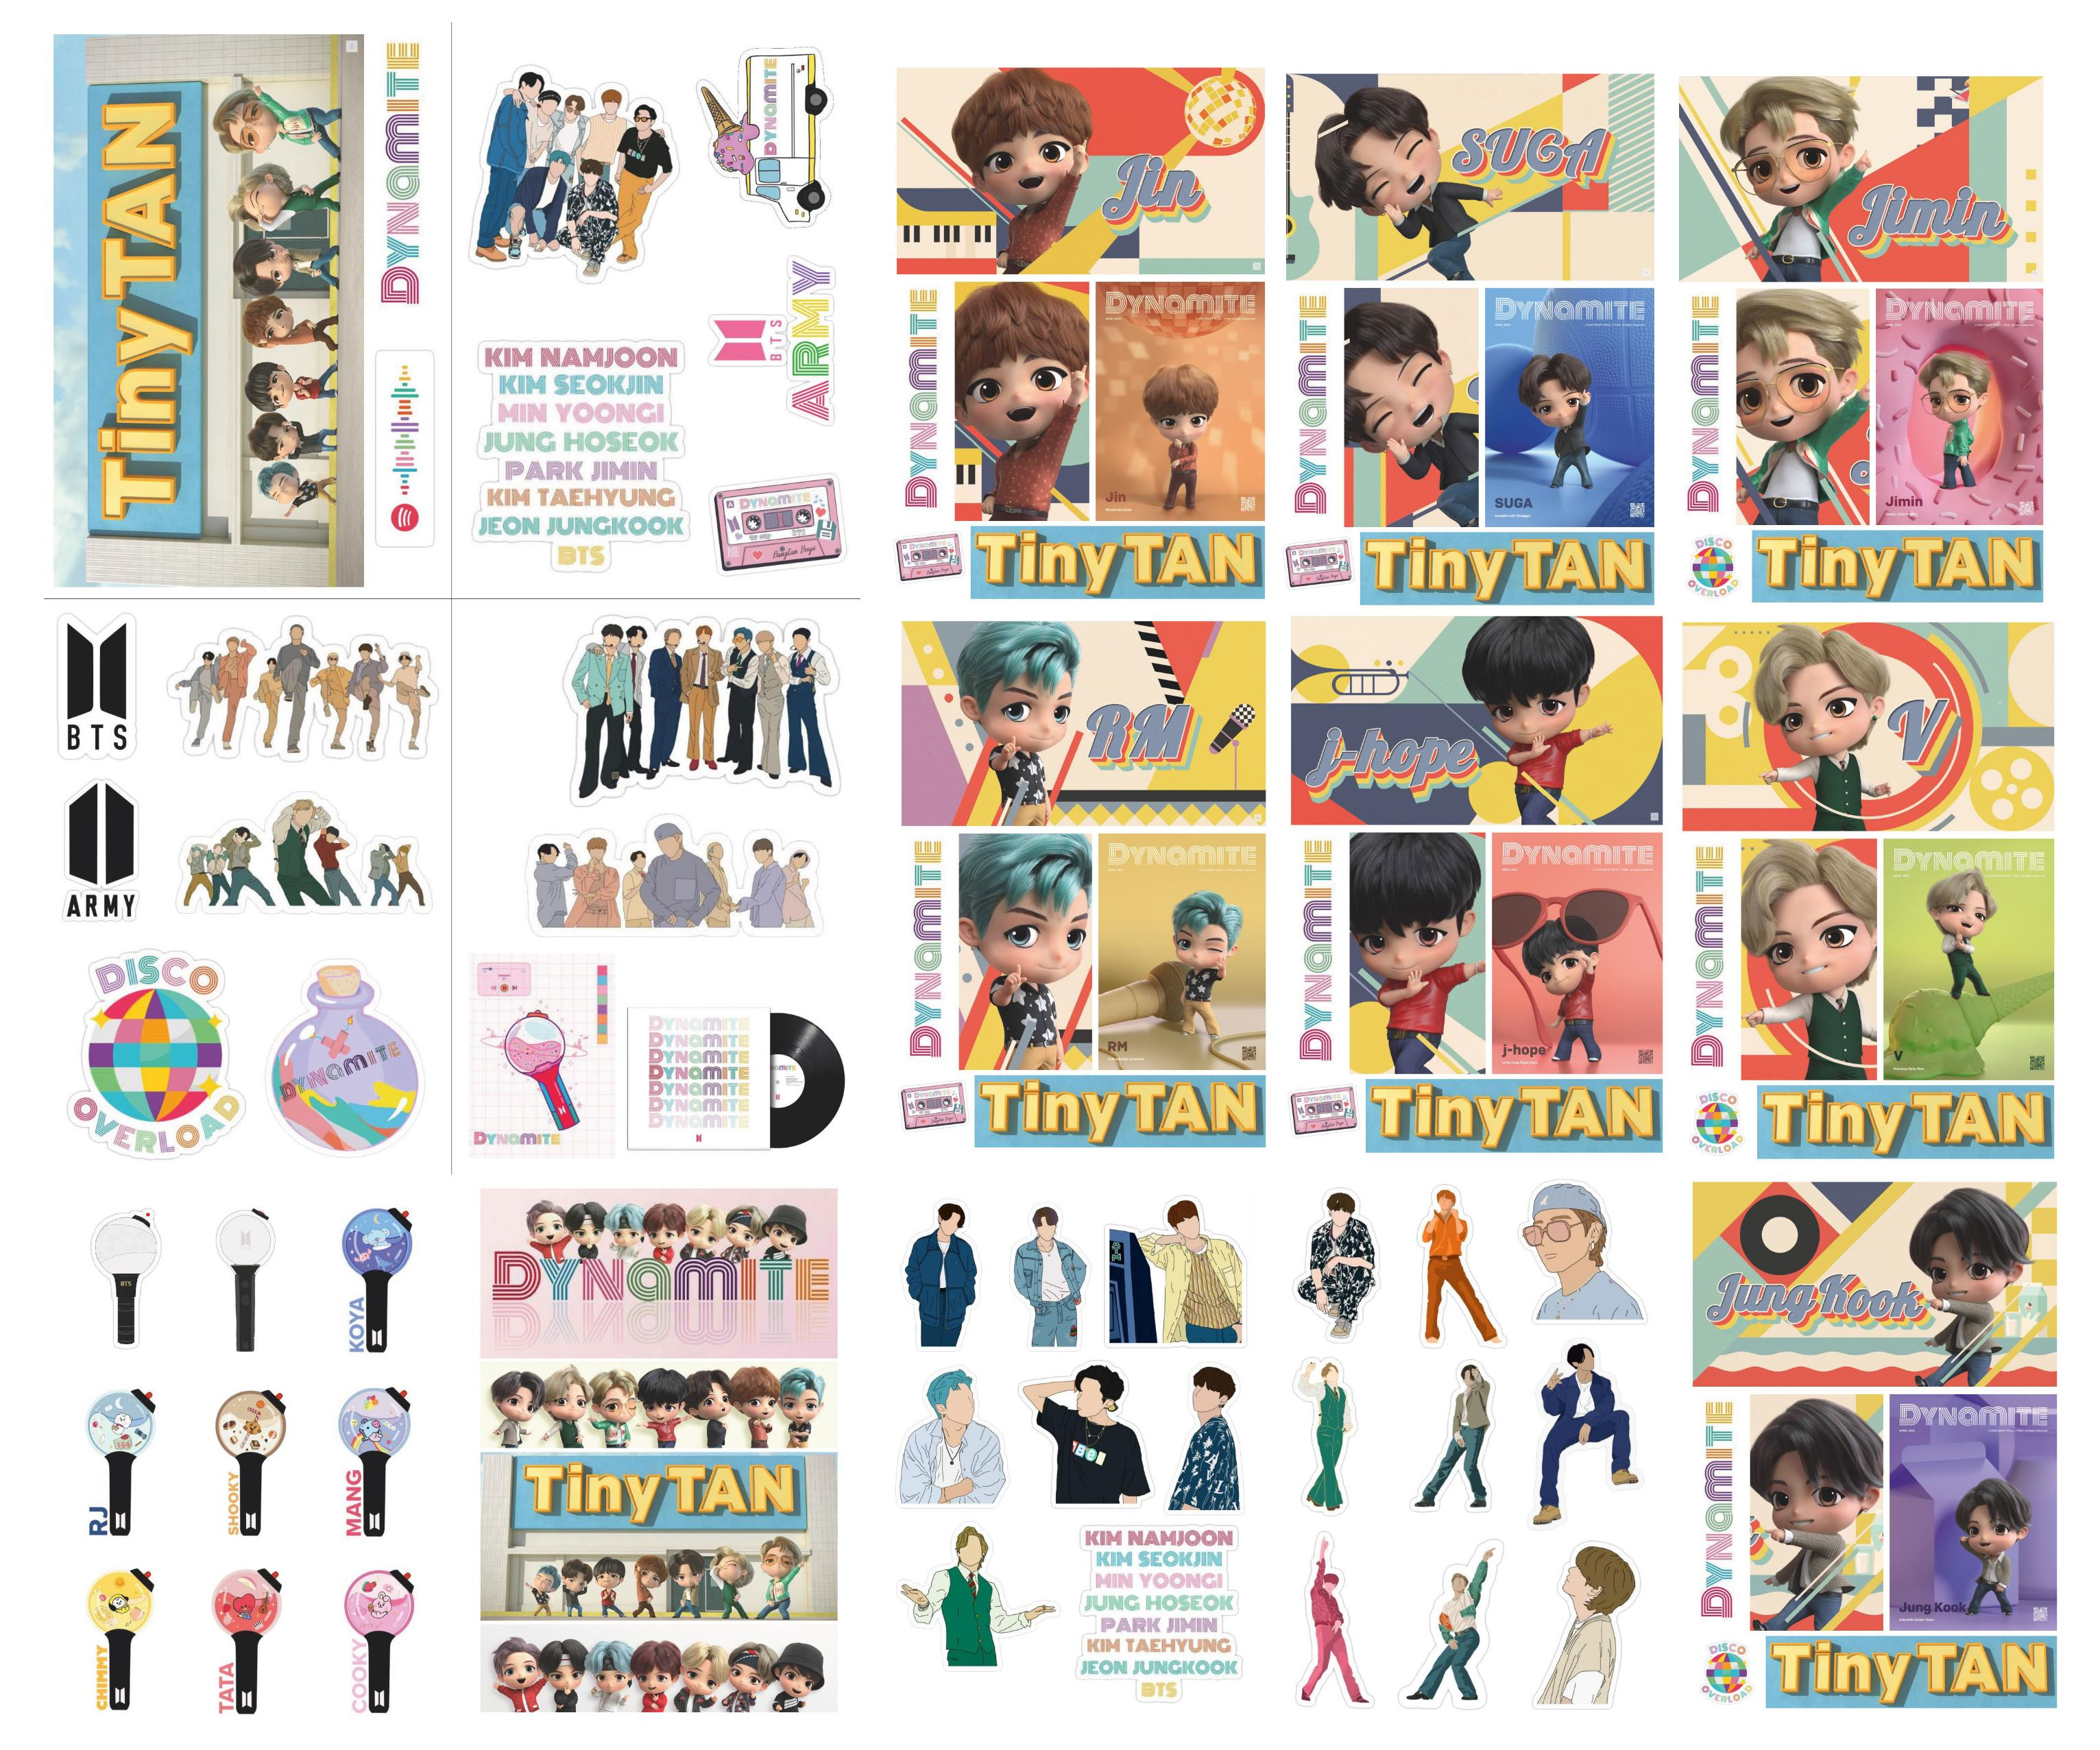 BTS Dynamite Tiny Tan Sticker collection